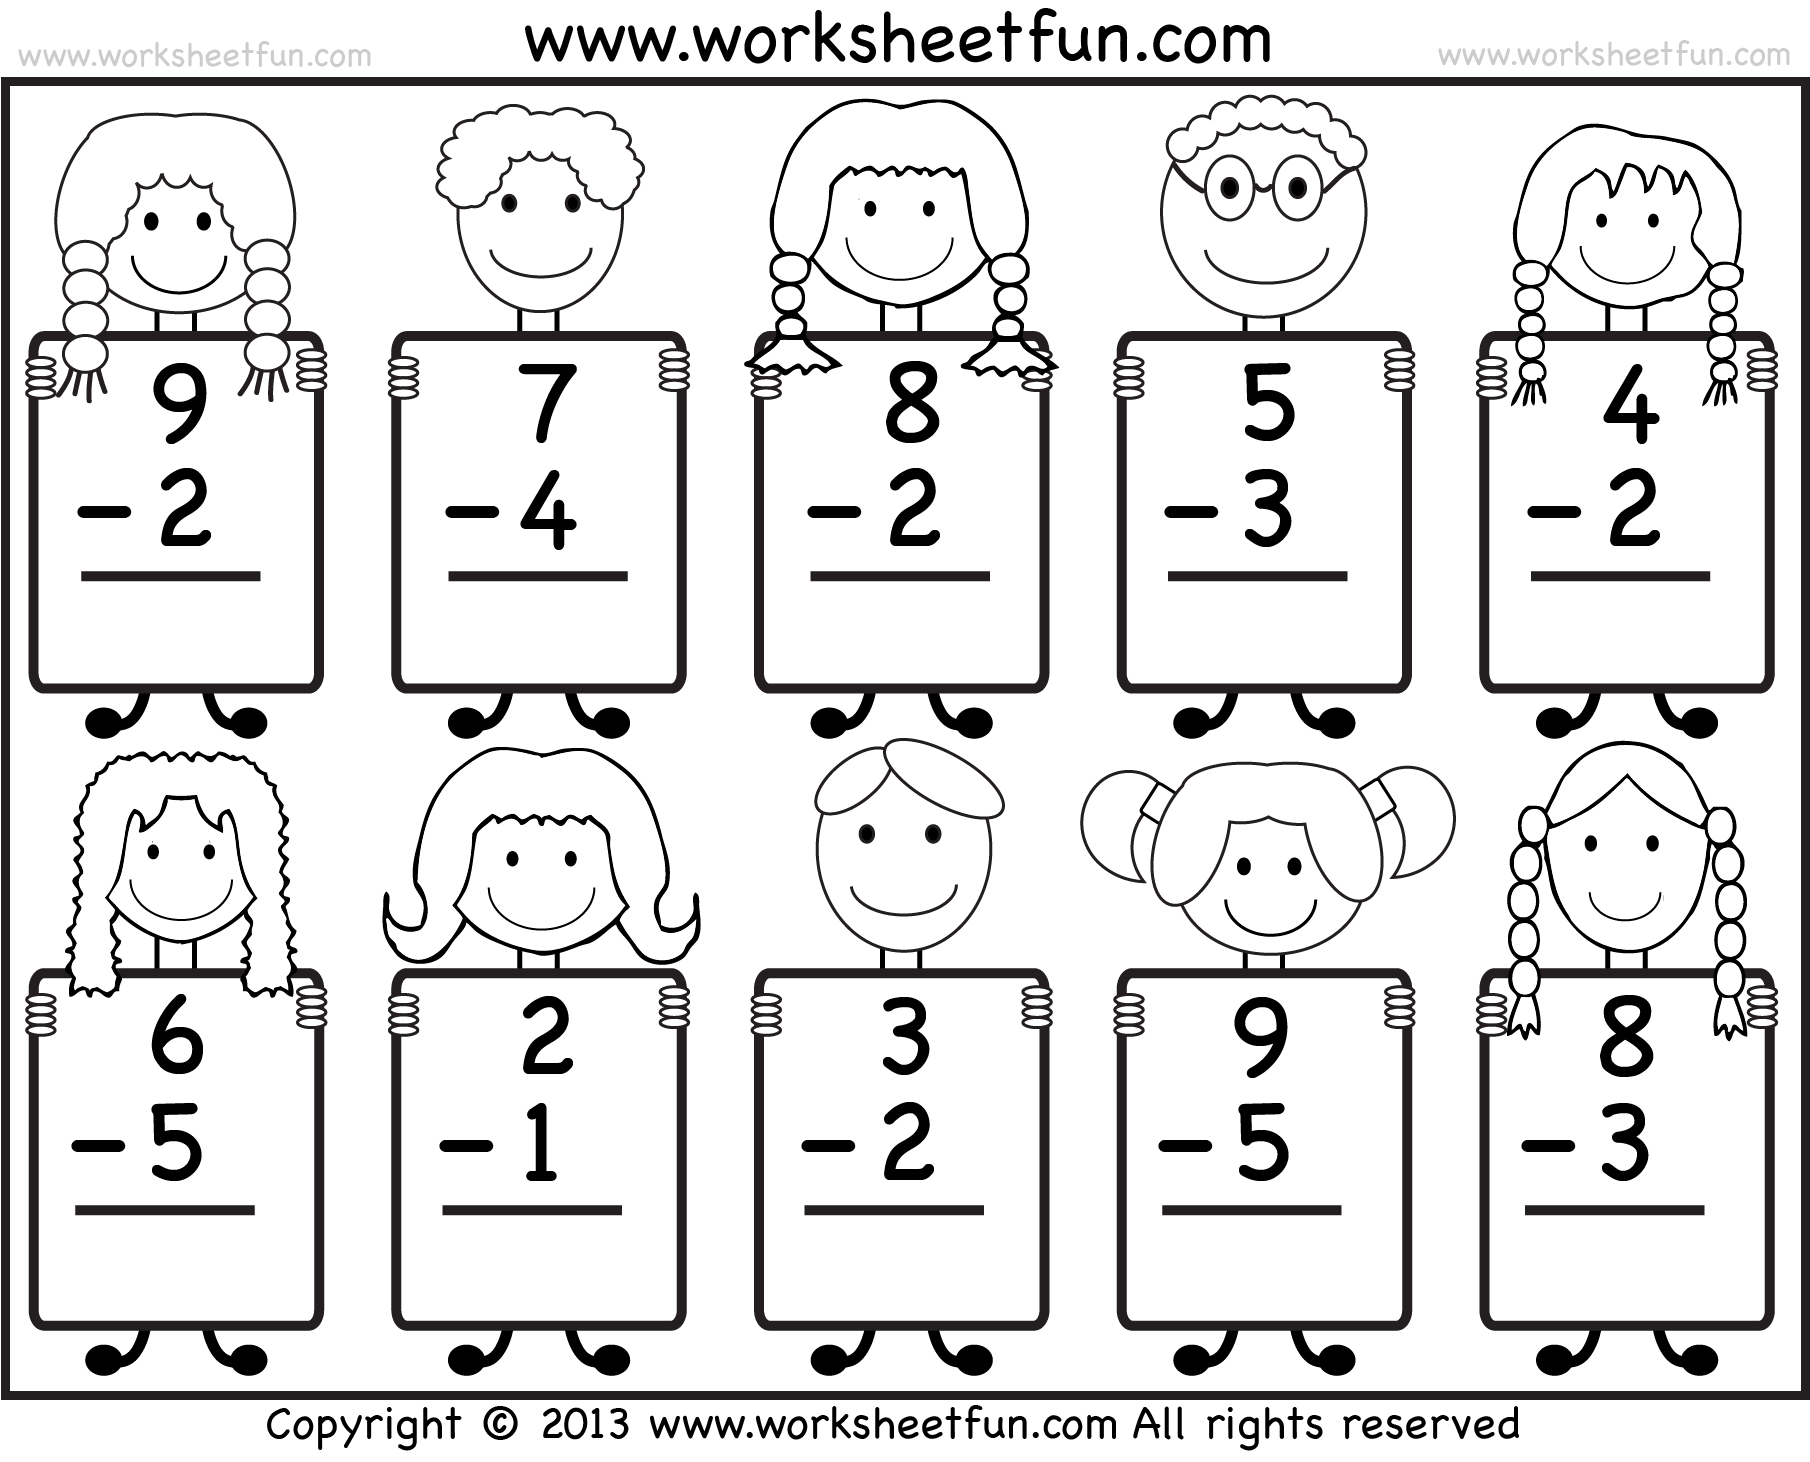 Worksheet Math For Kindergarteners a fantasy story baby bears space journey kindergarten money subtraction worksheets beginner subtraction